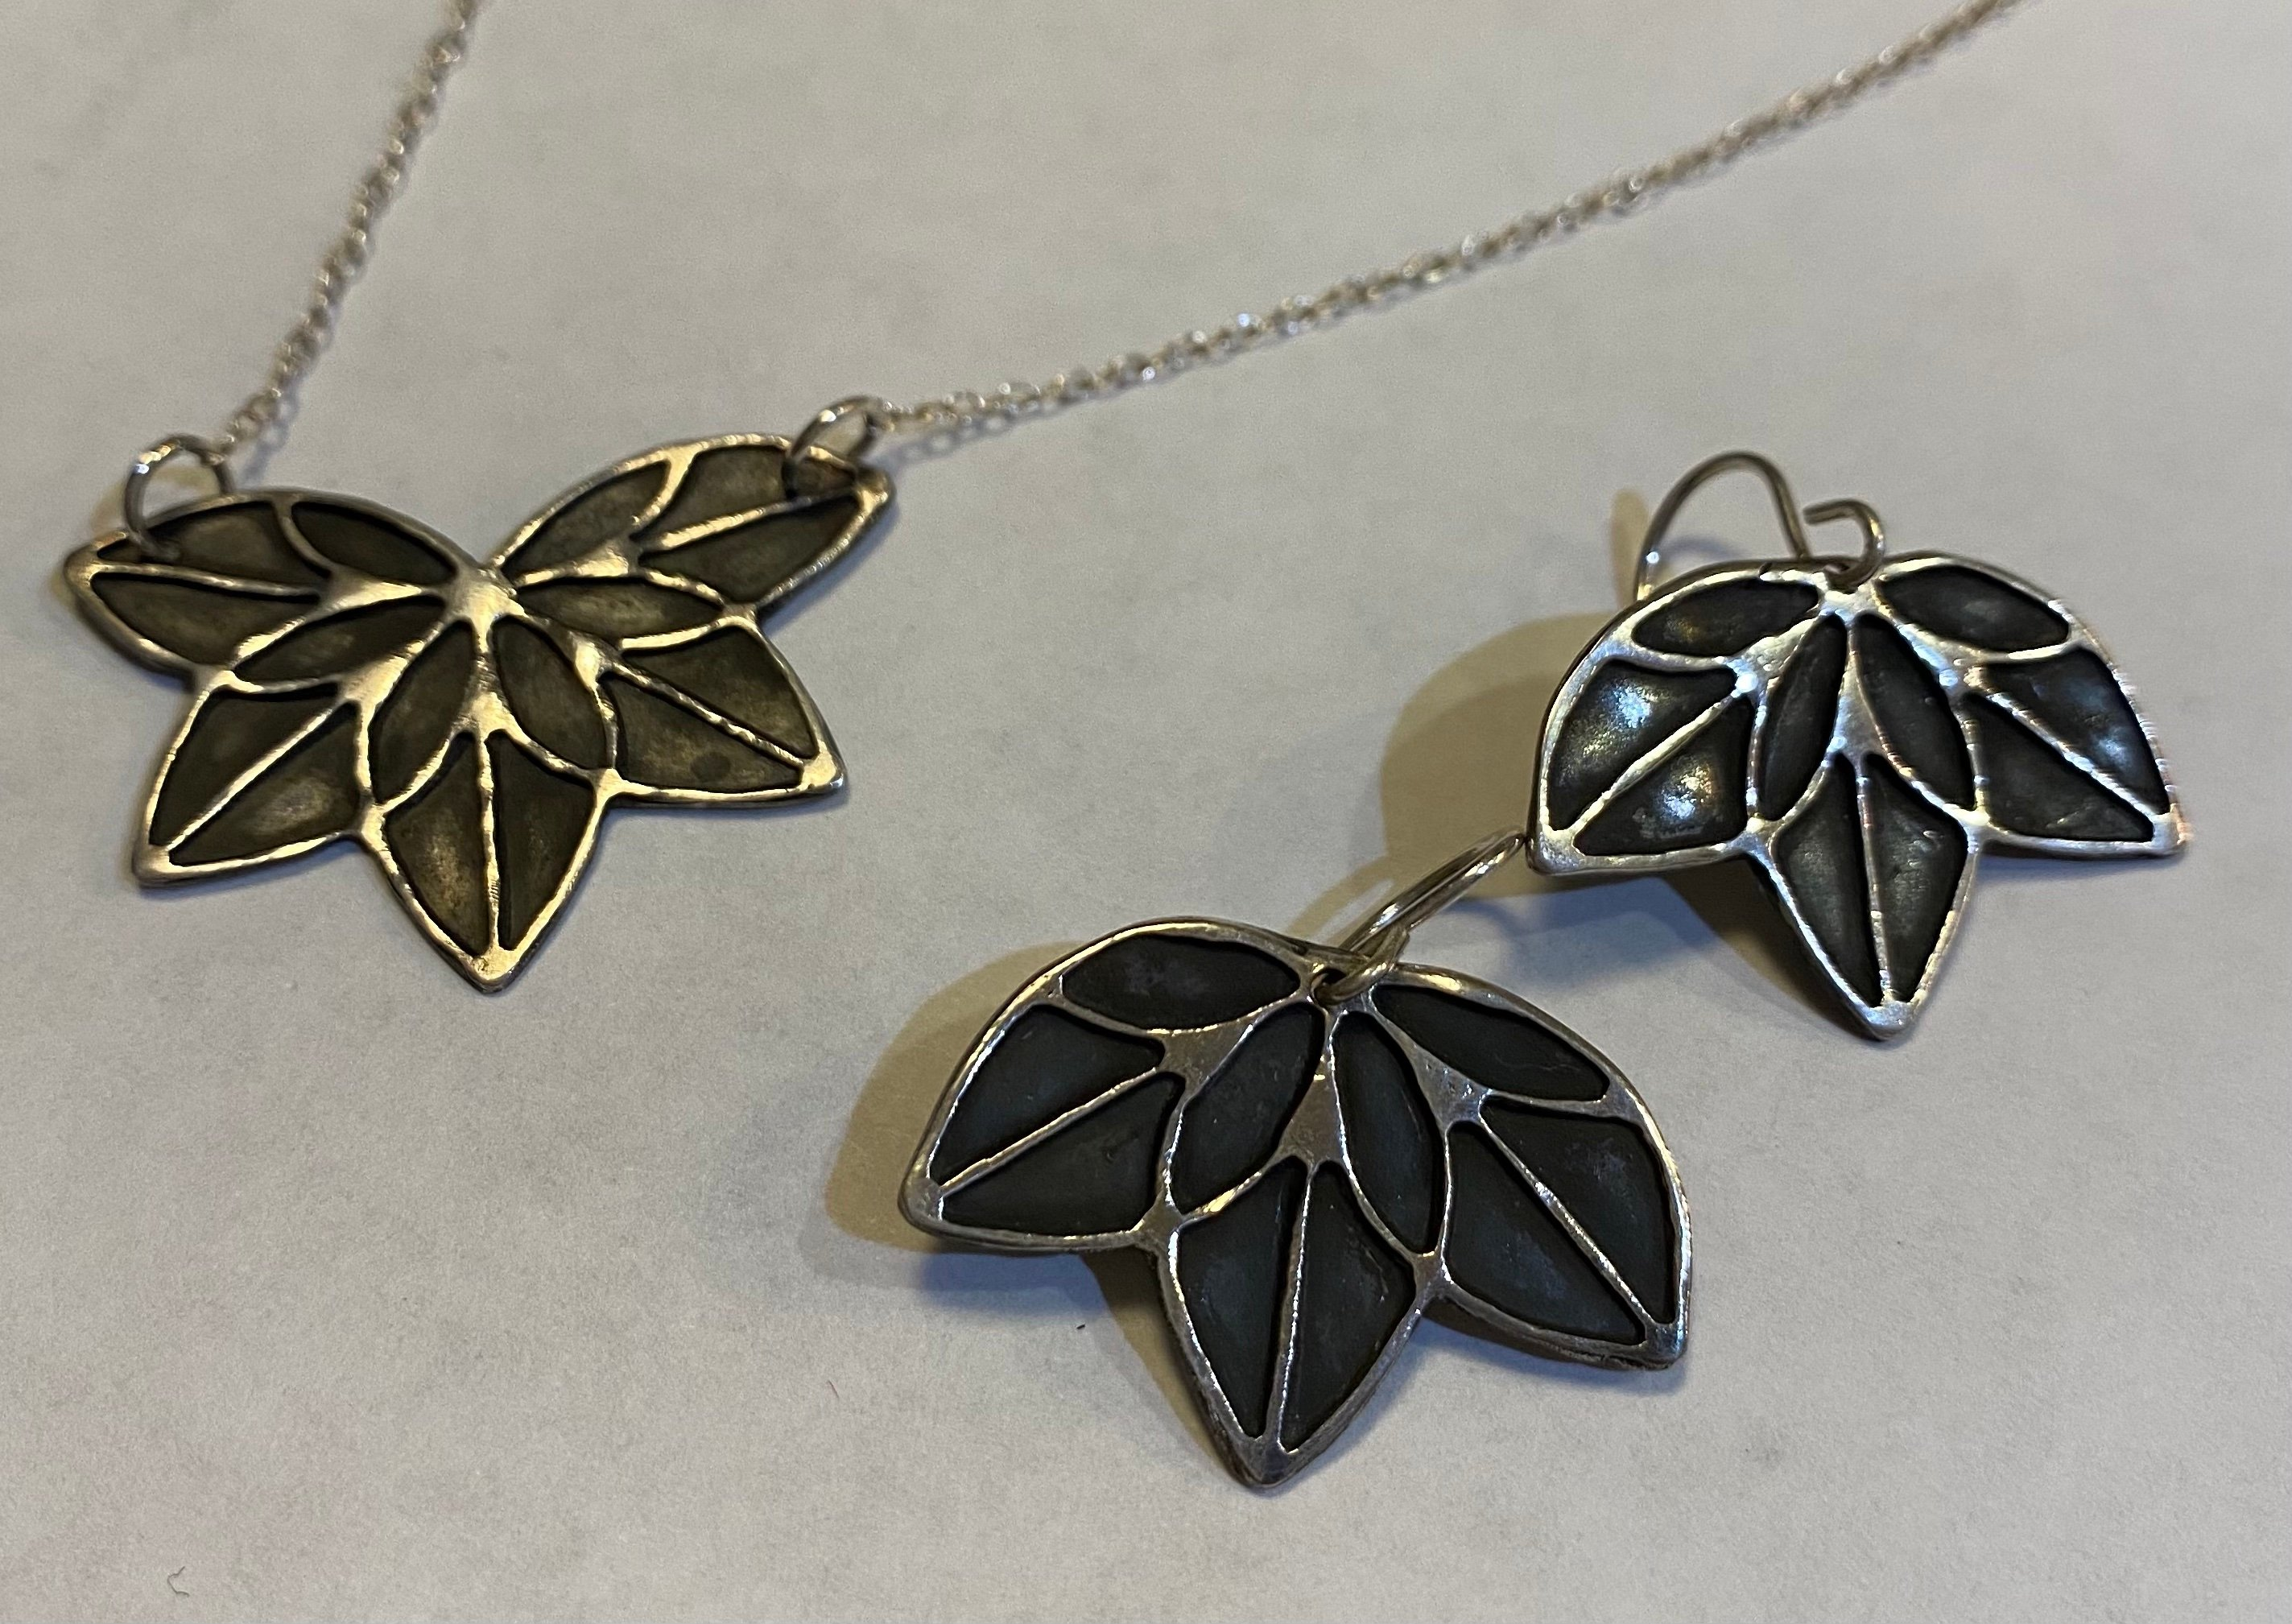 Lotus Necklace and Earrings PMC, Sterling Silver $65. Set